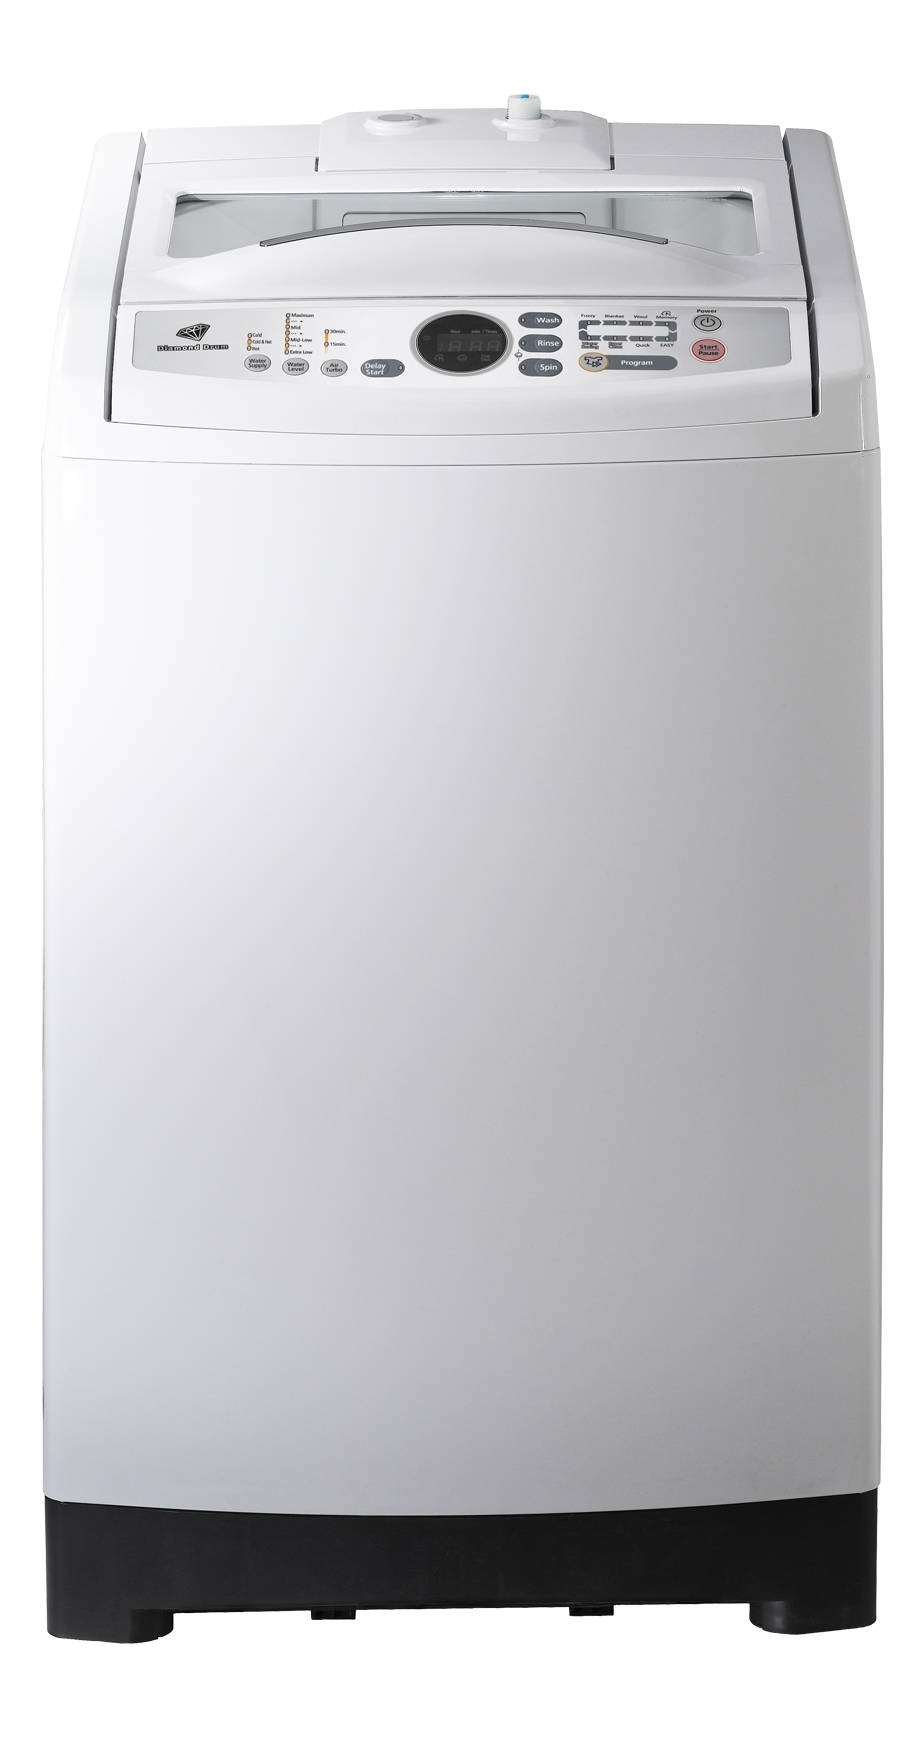 samsung top load washing machine recall samsung australia. Black Bedroom Furniture Sets. Home Design Ideas